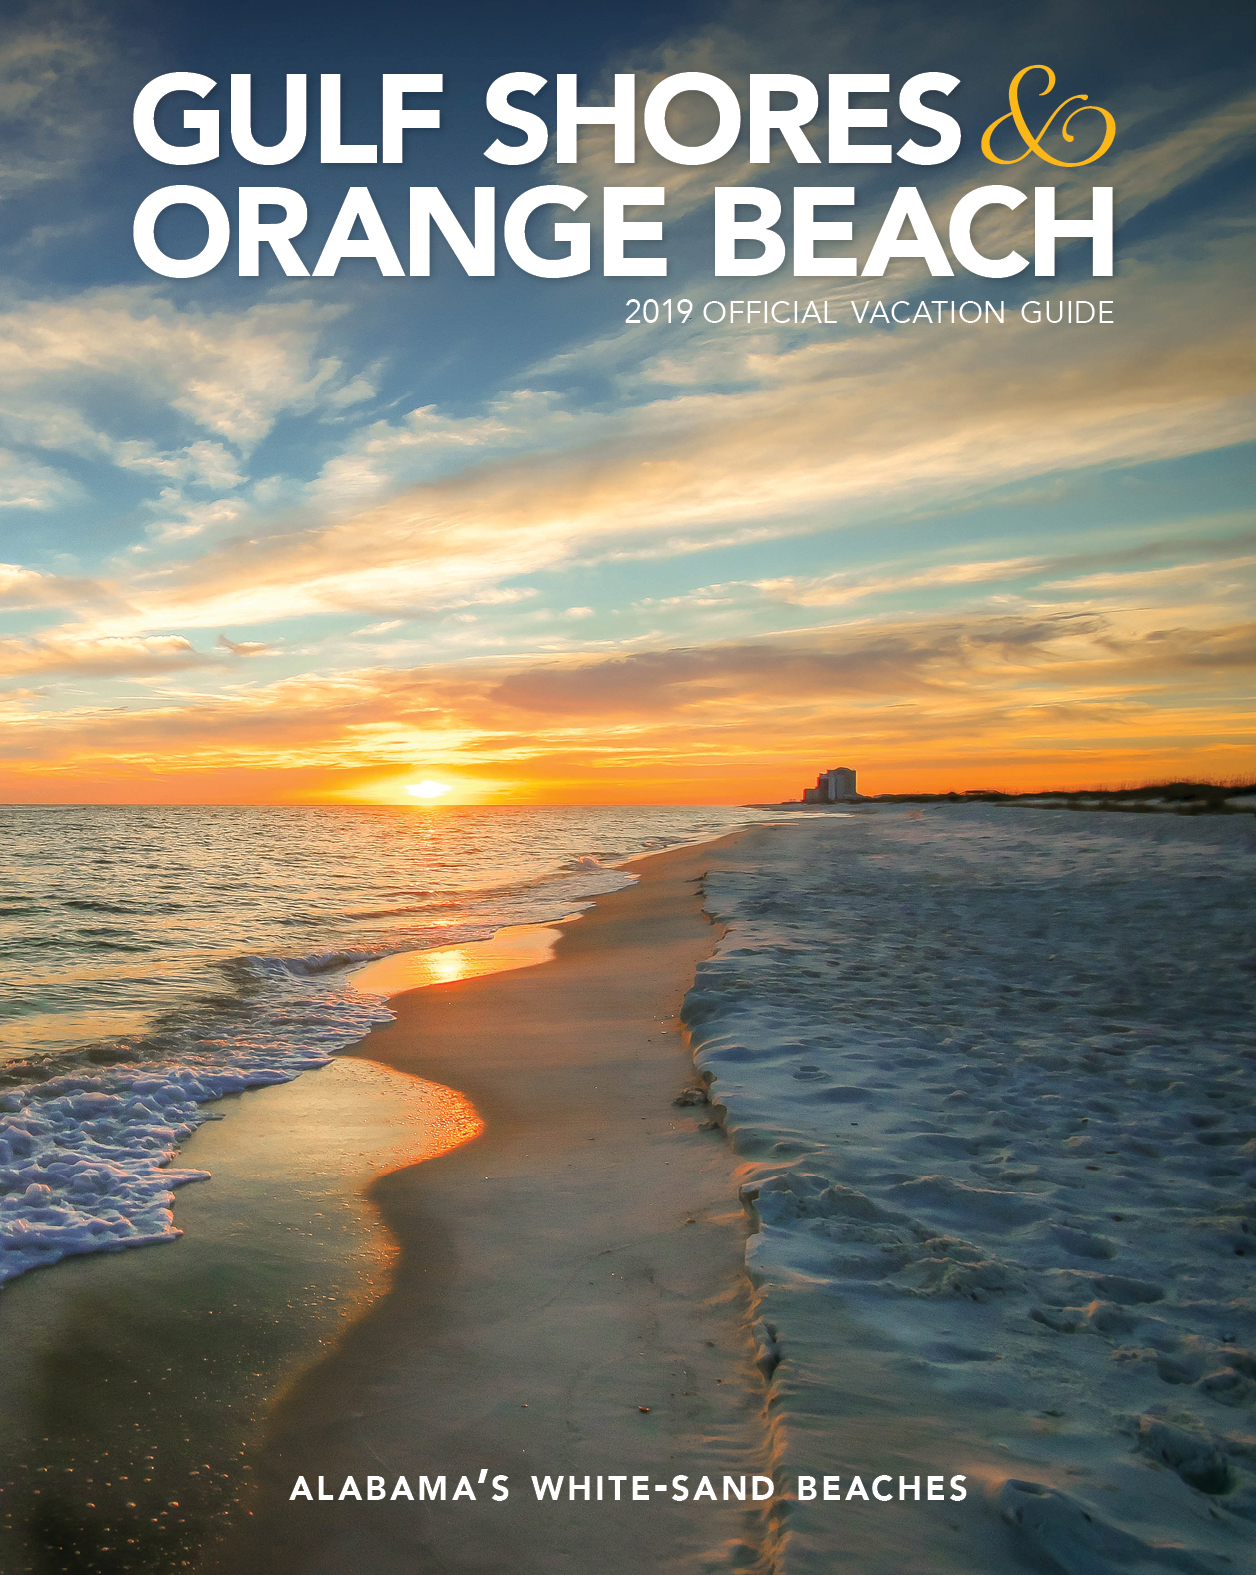 gulf shores orange beach vacation guide